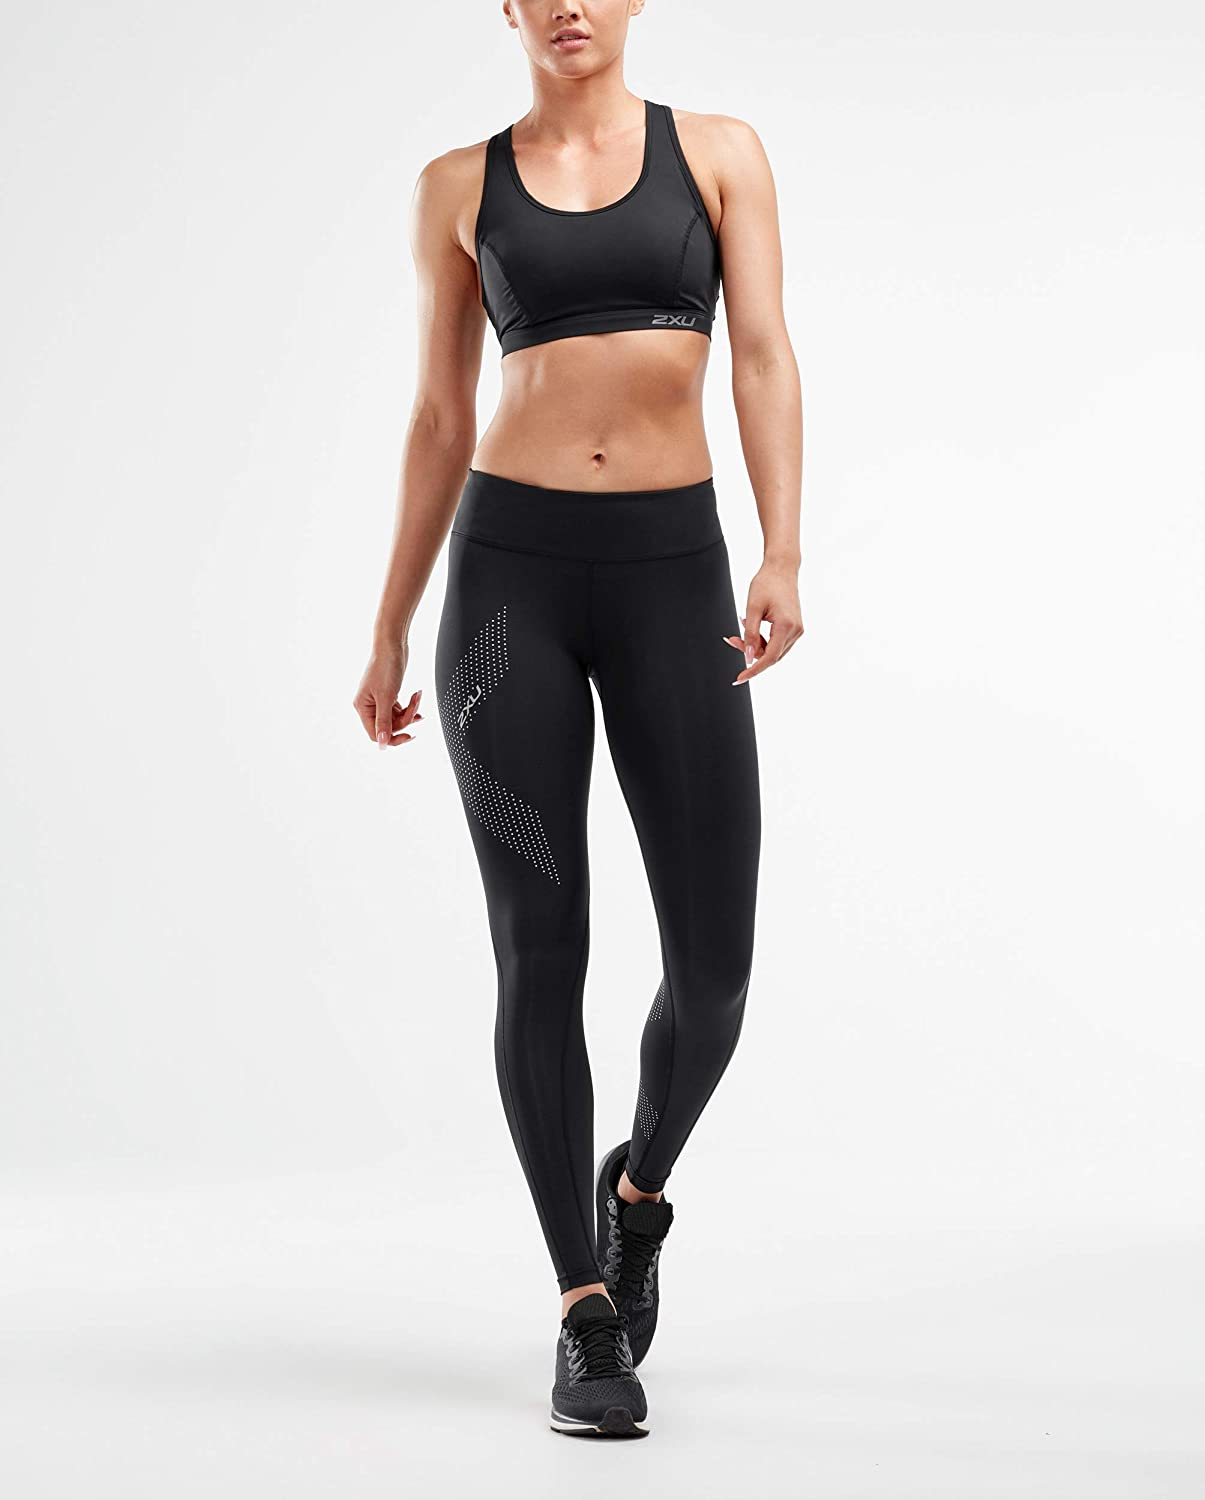 2XU Women's Mid-Rise Tights Compression Cheap mail Super sale order shopping